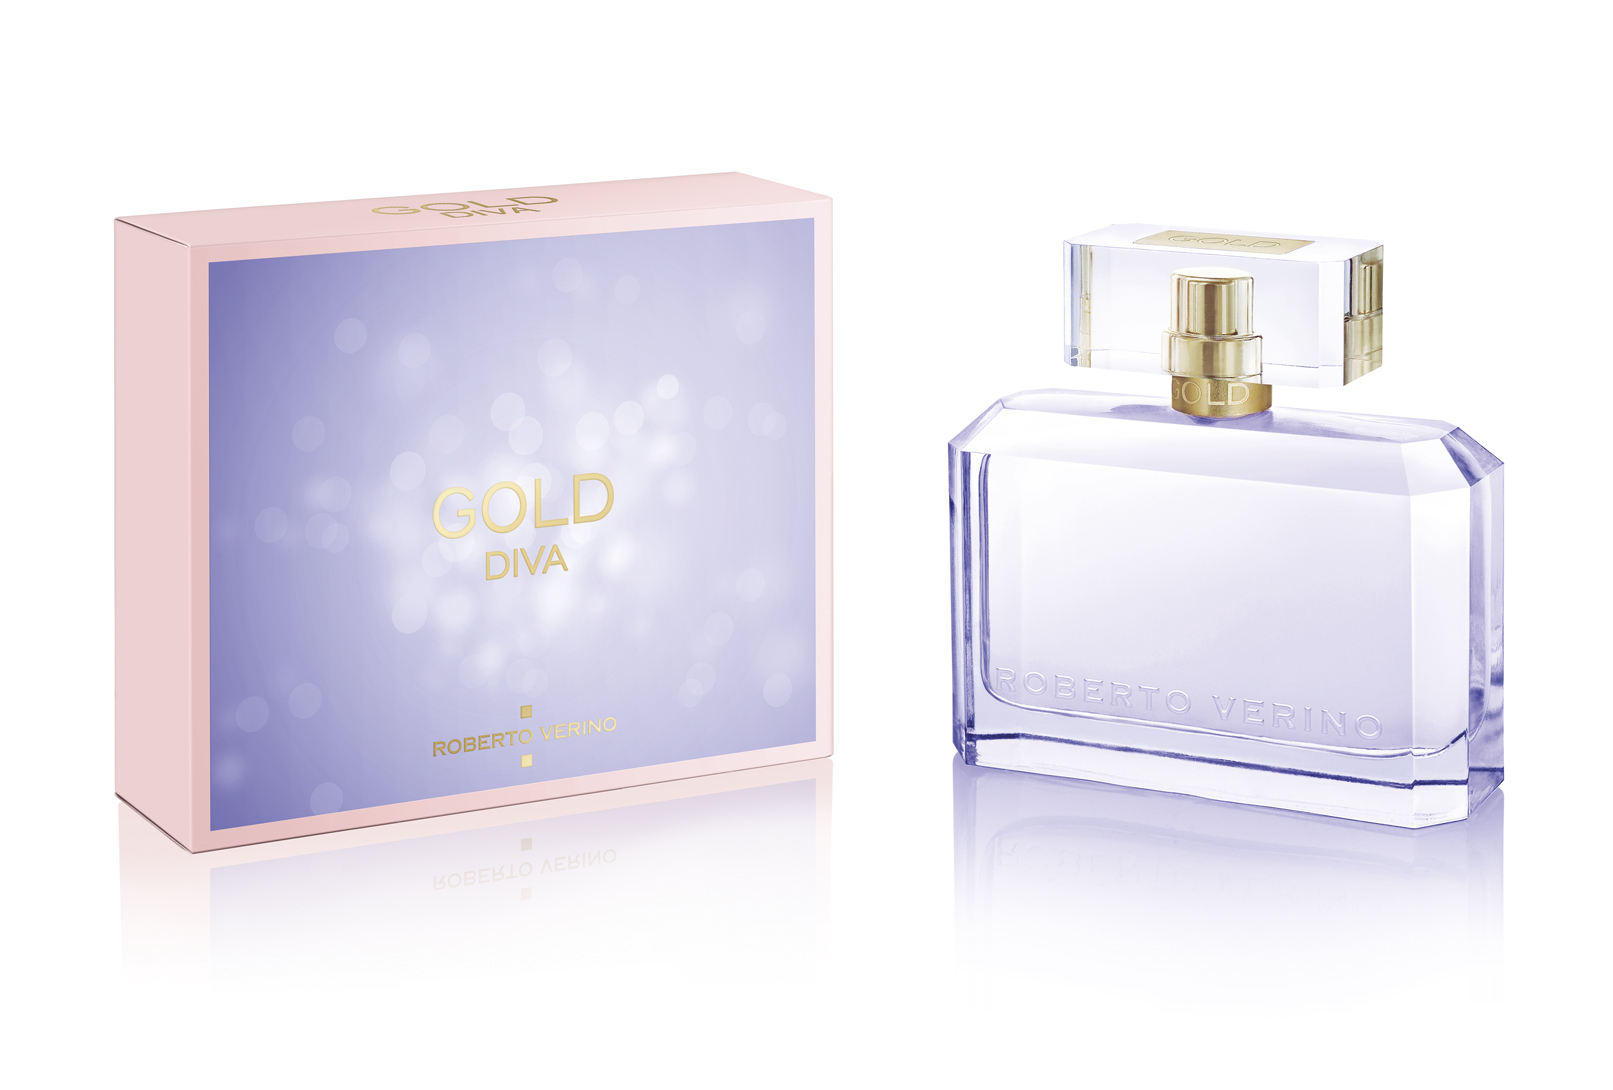 ROBERTO VERINO GOLD DIVA EDP 90 ML